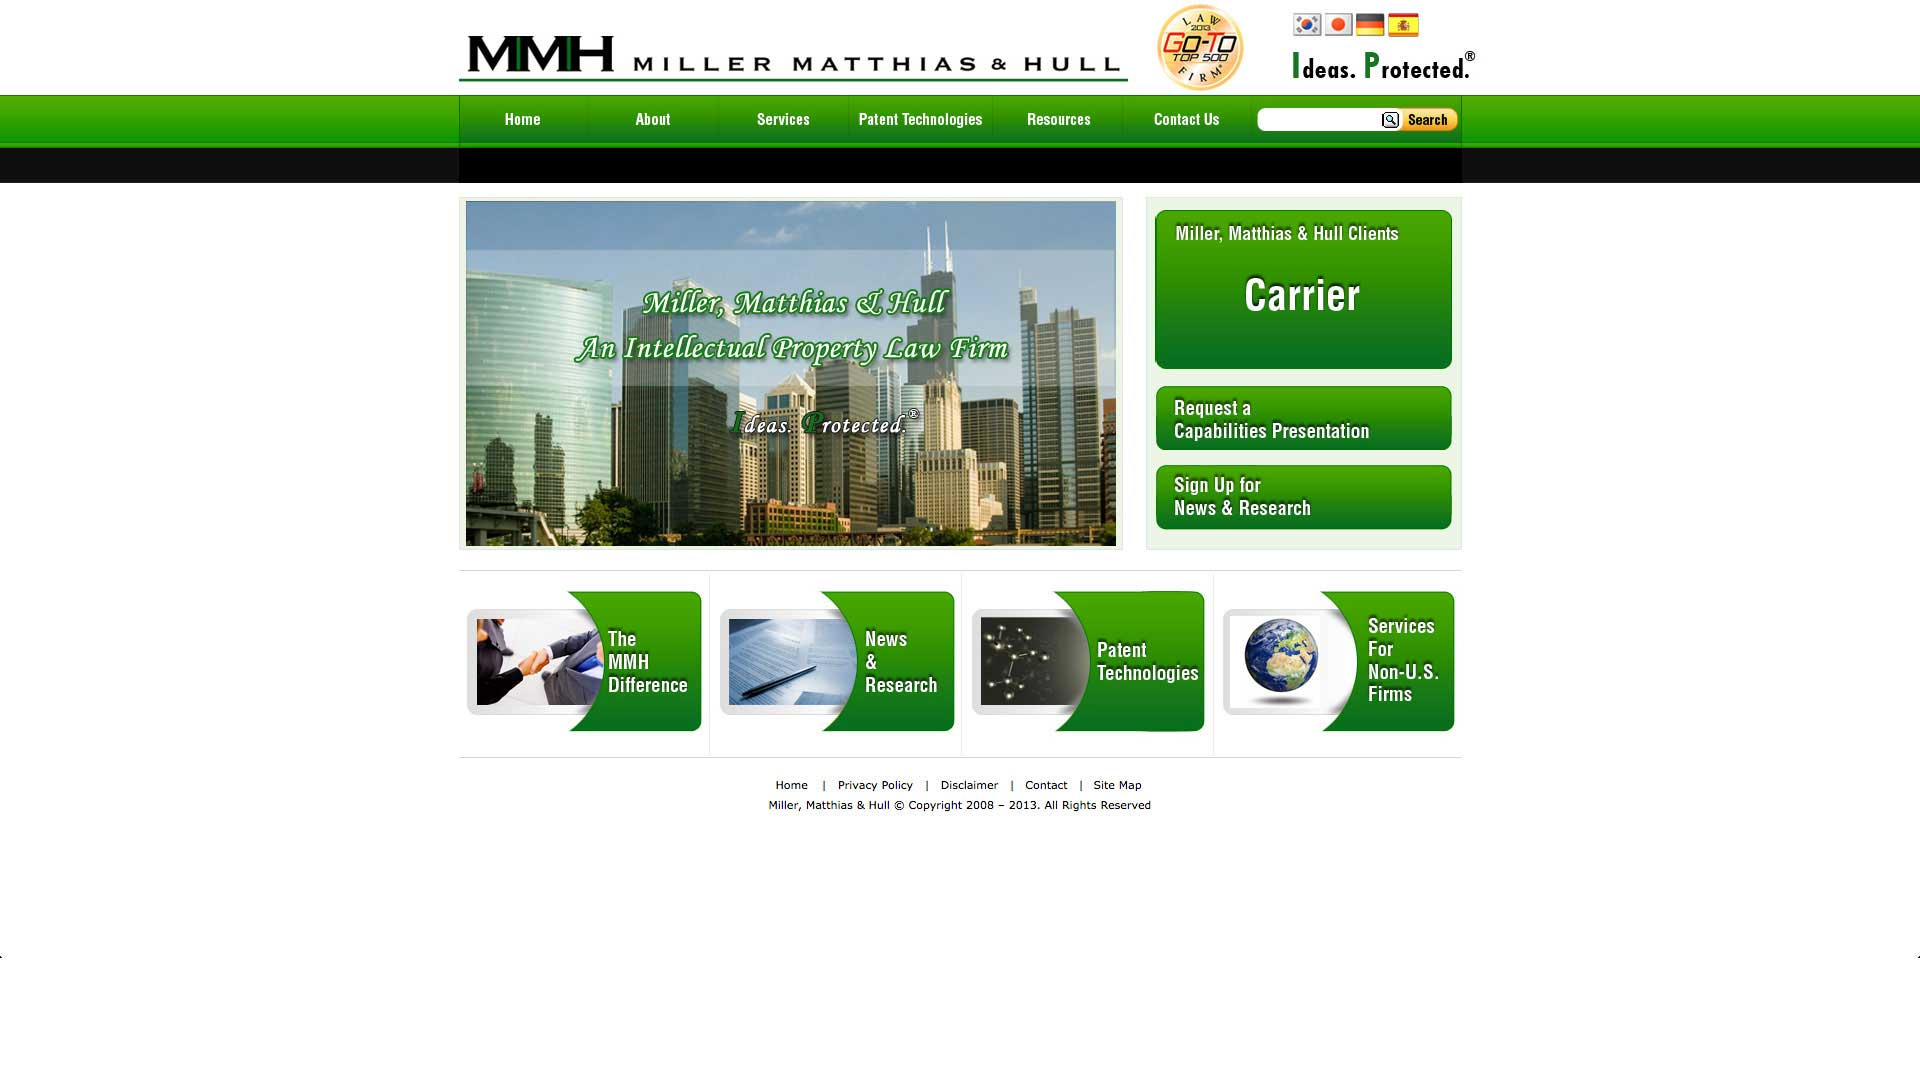 Miller Matthias & Hull - Original Website - Browser View